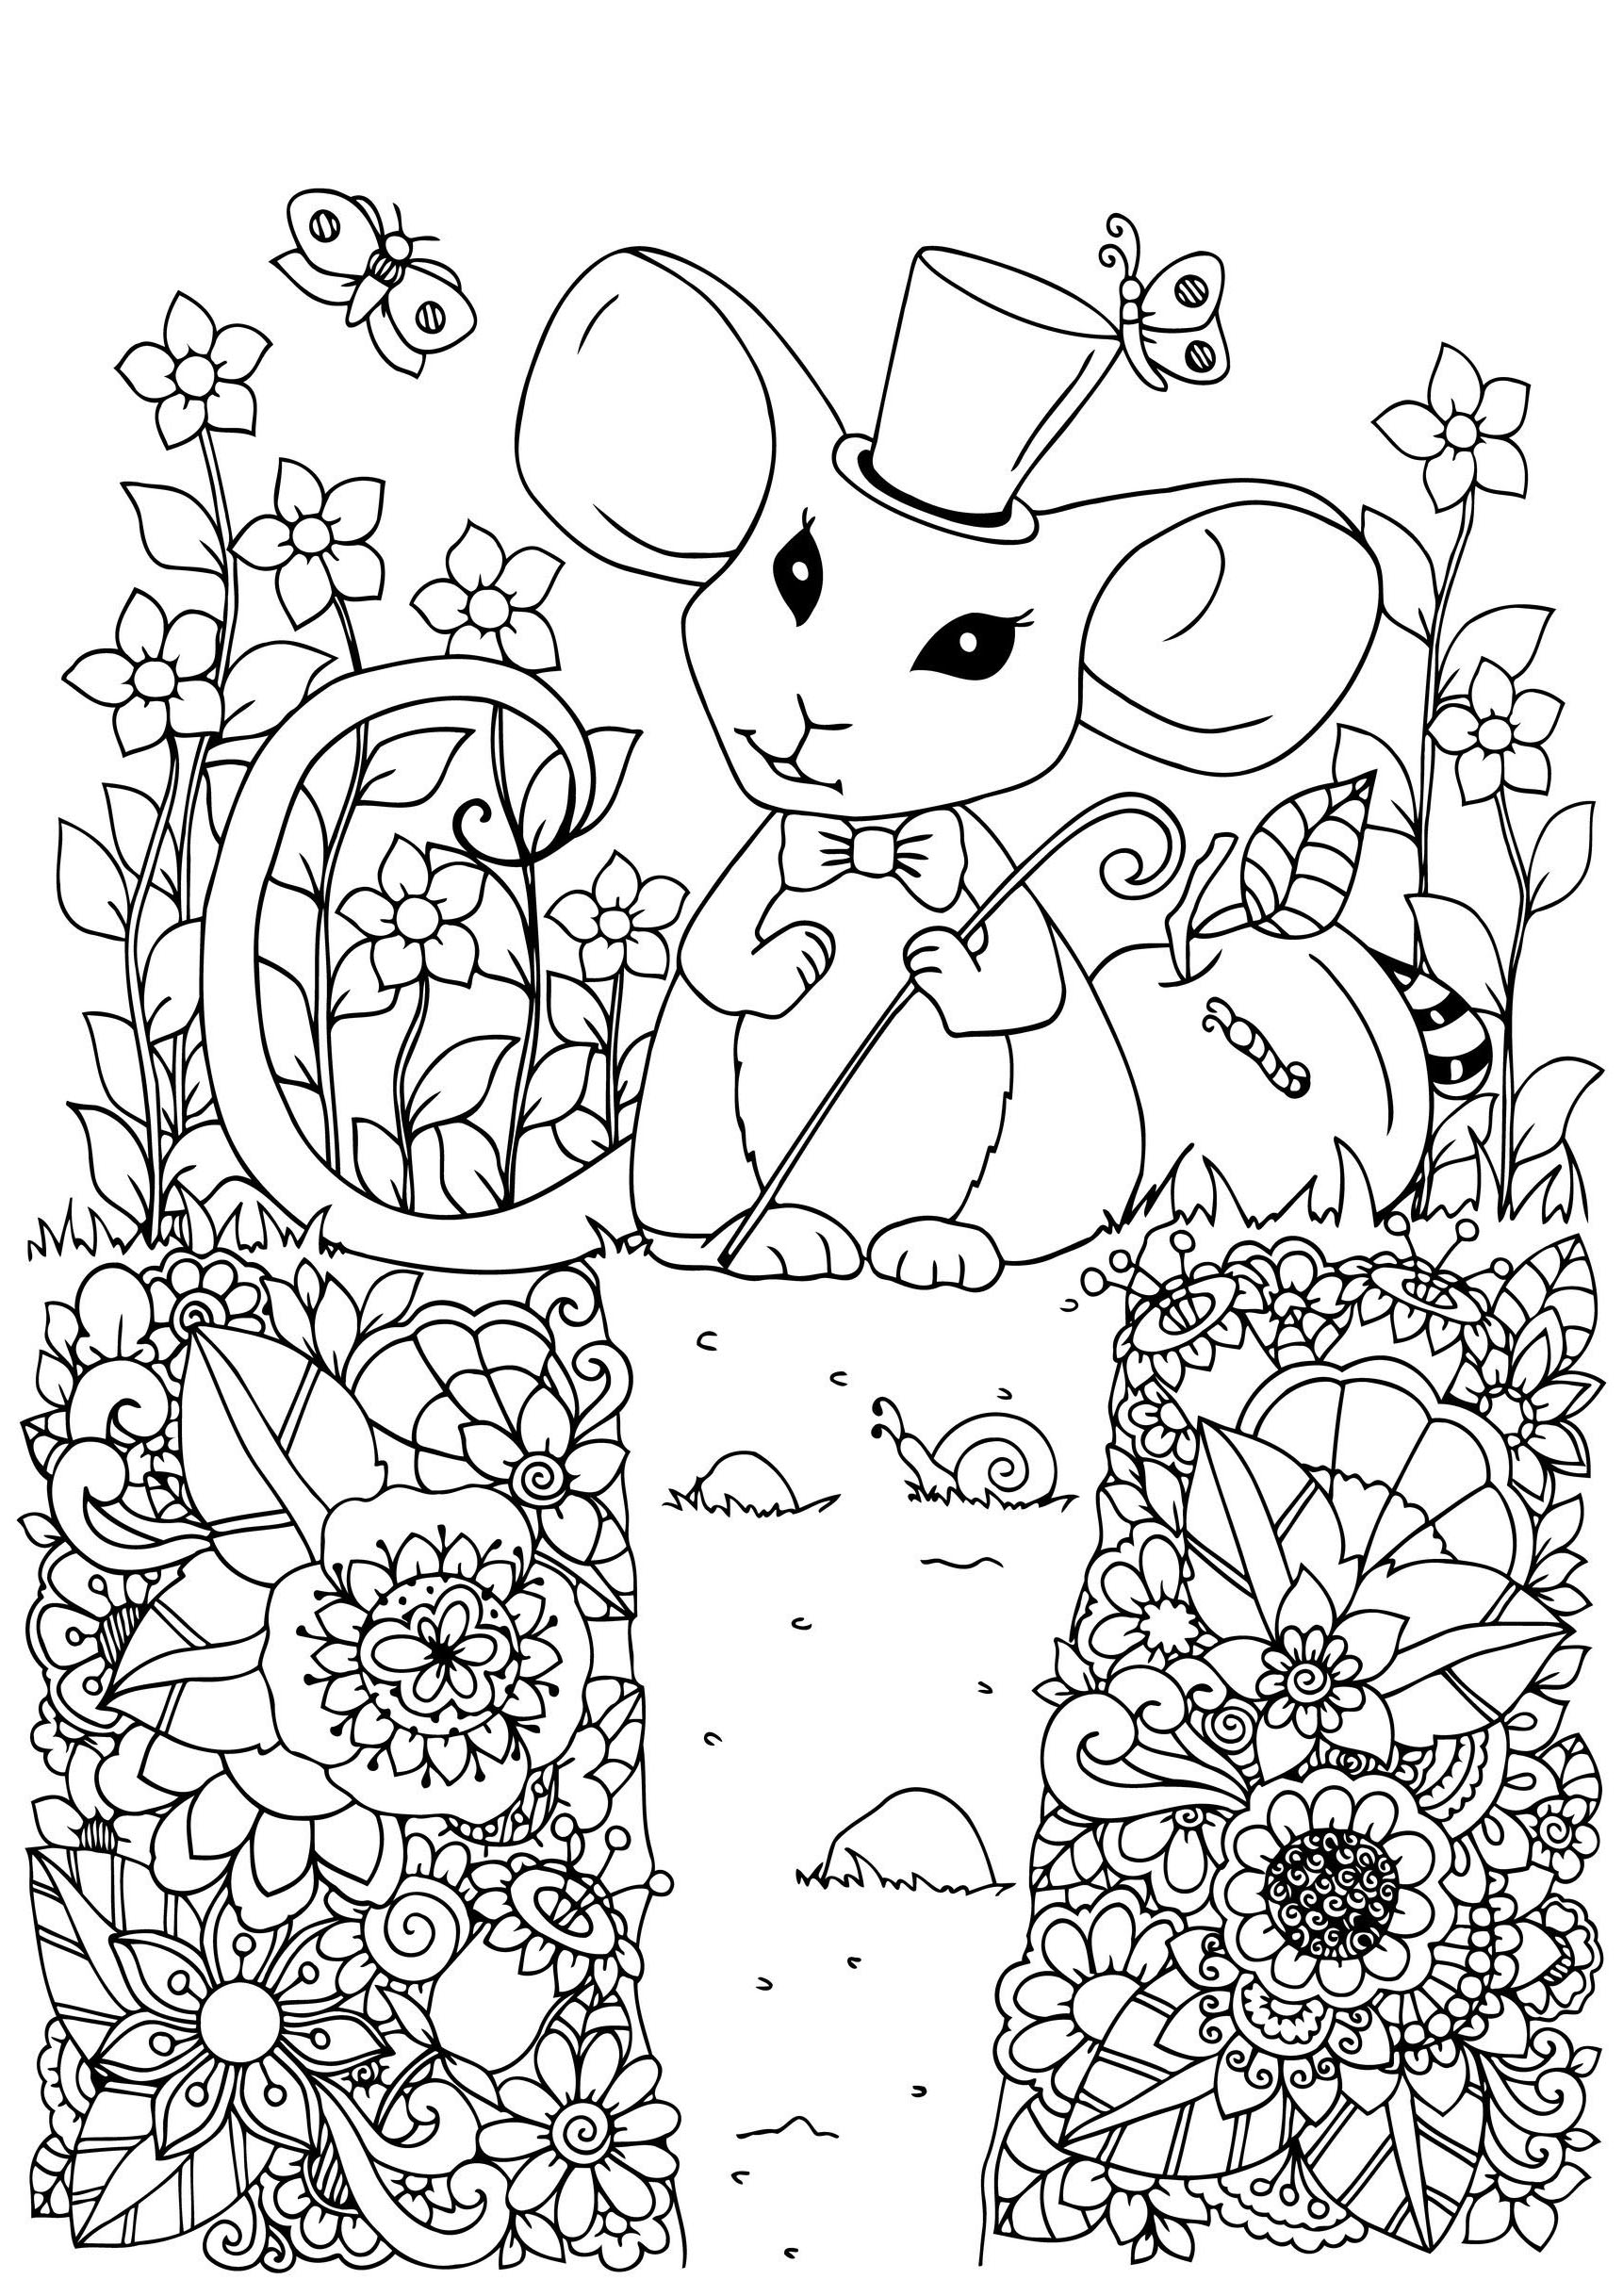 coloring free printable kids free printable tangled coloring pages for kids cool2bkids kids free coloring printable